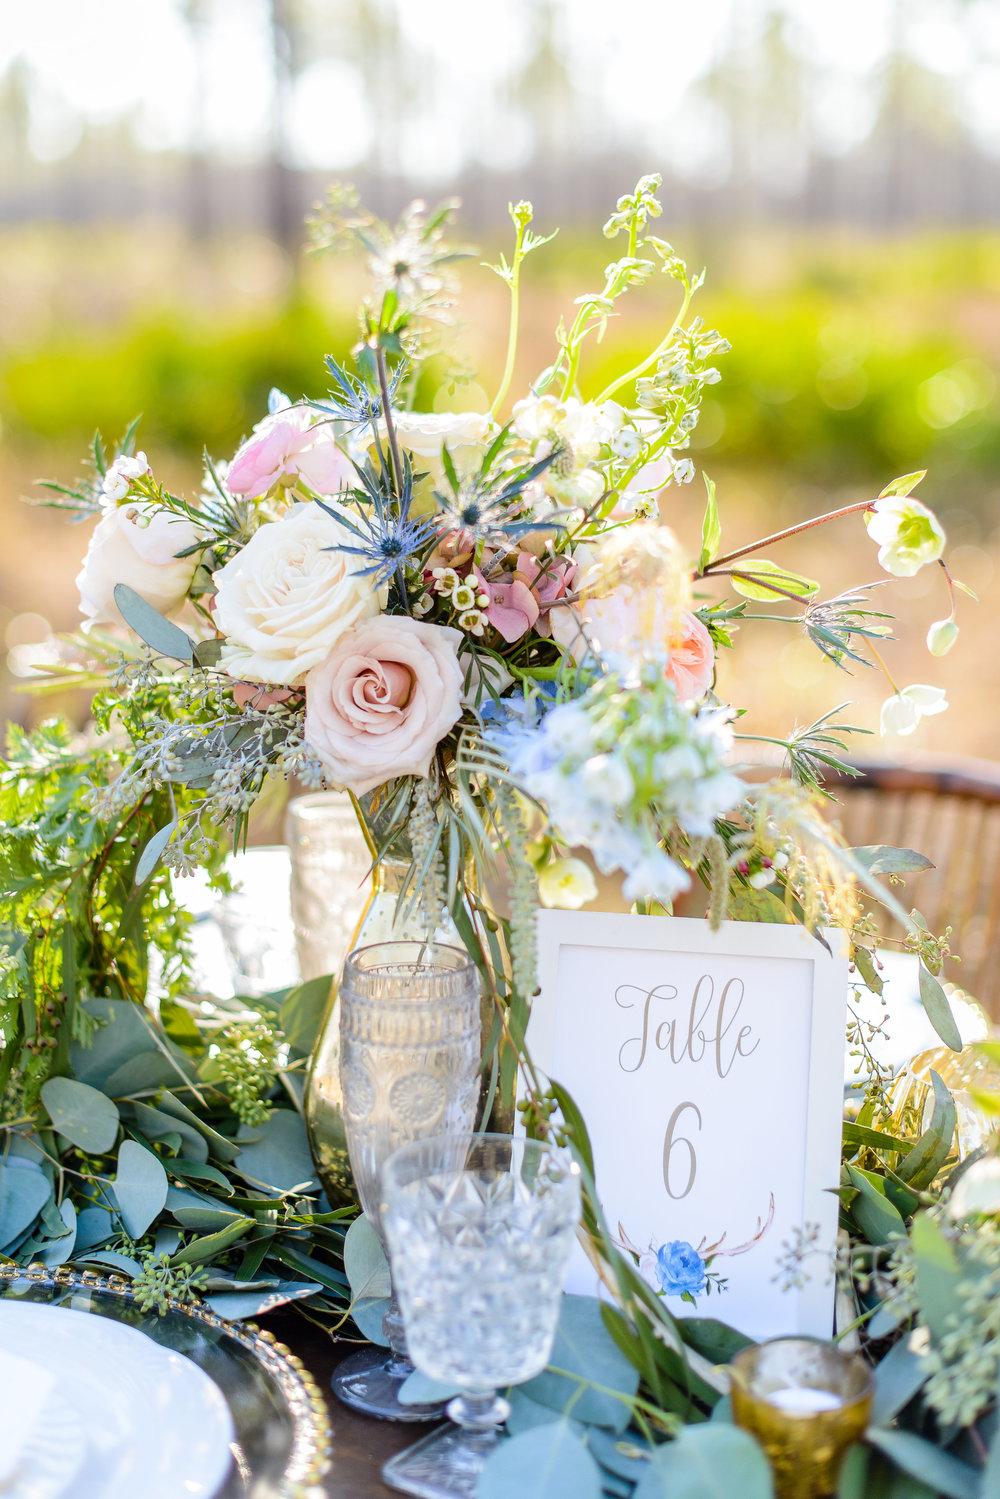 Boho Antler Inspirational Shoot - Table Numbers - published by Weddingstar Magazine - Grace and Serendipity, photography by The Veil Wedding Photography